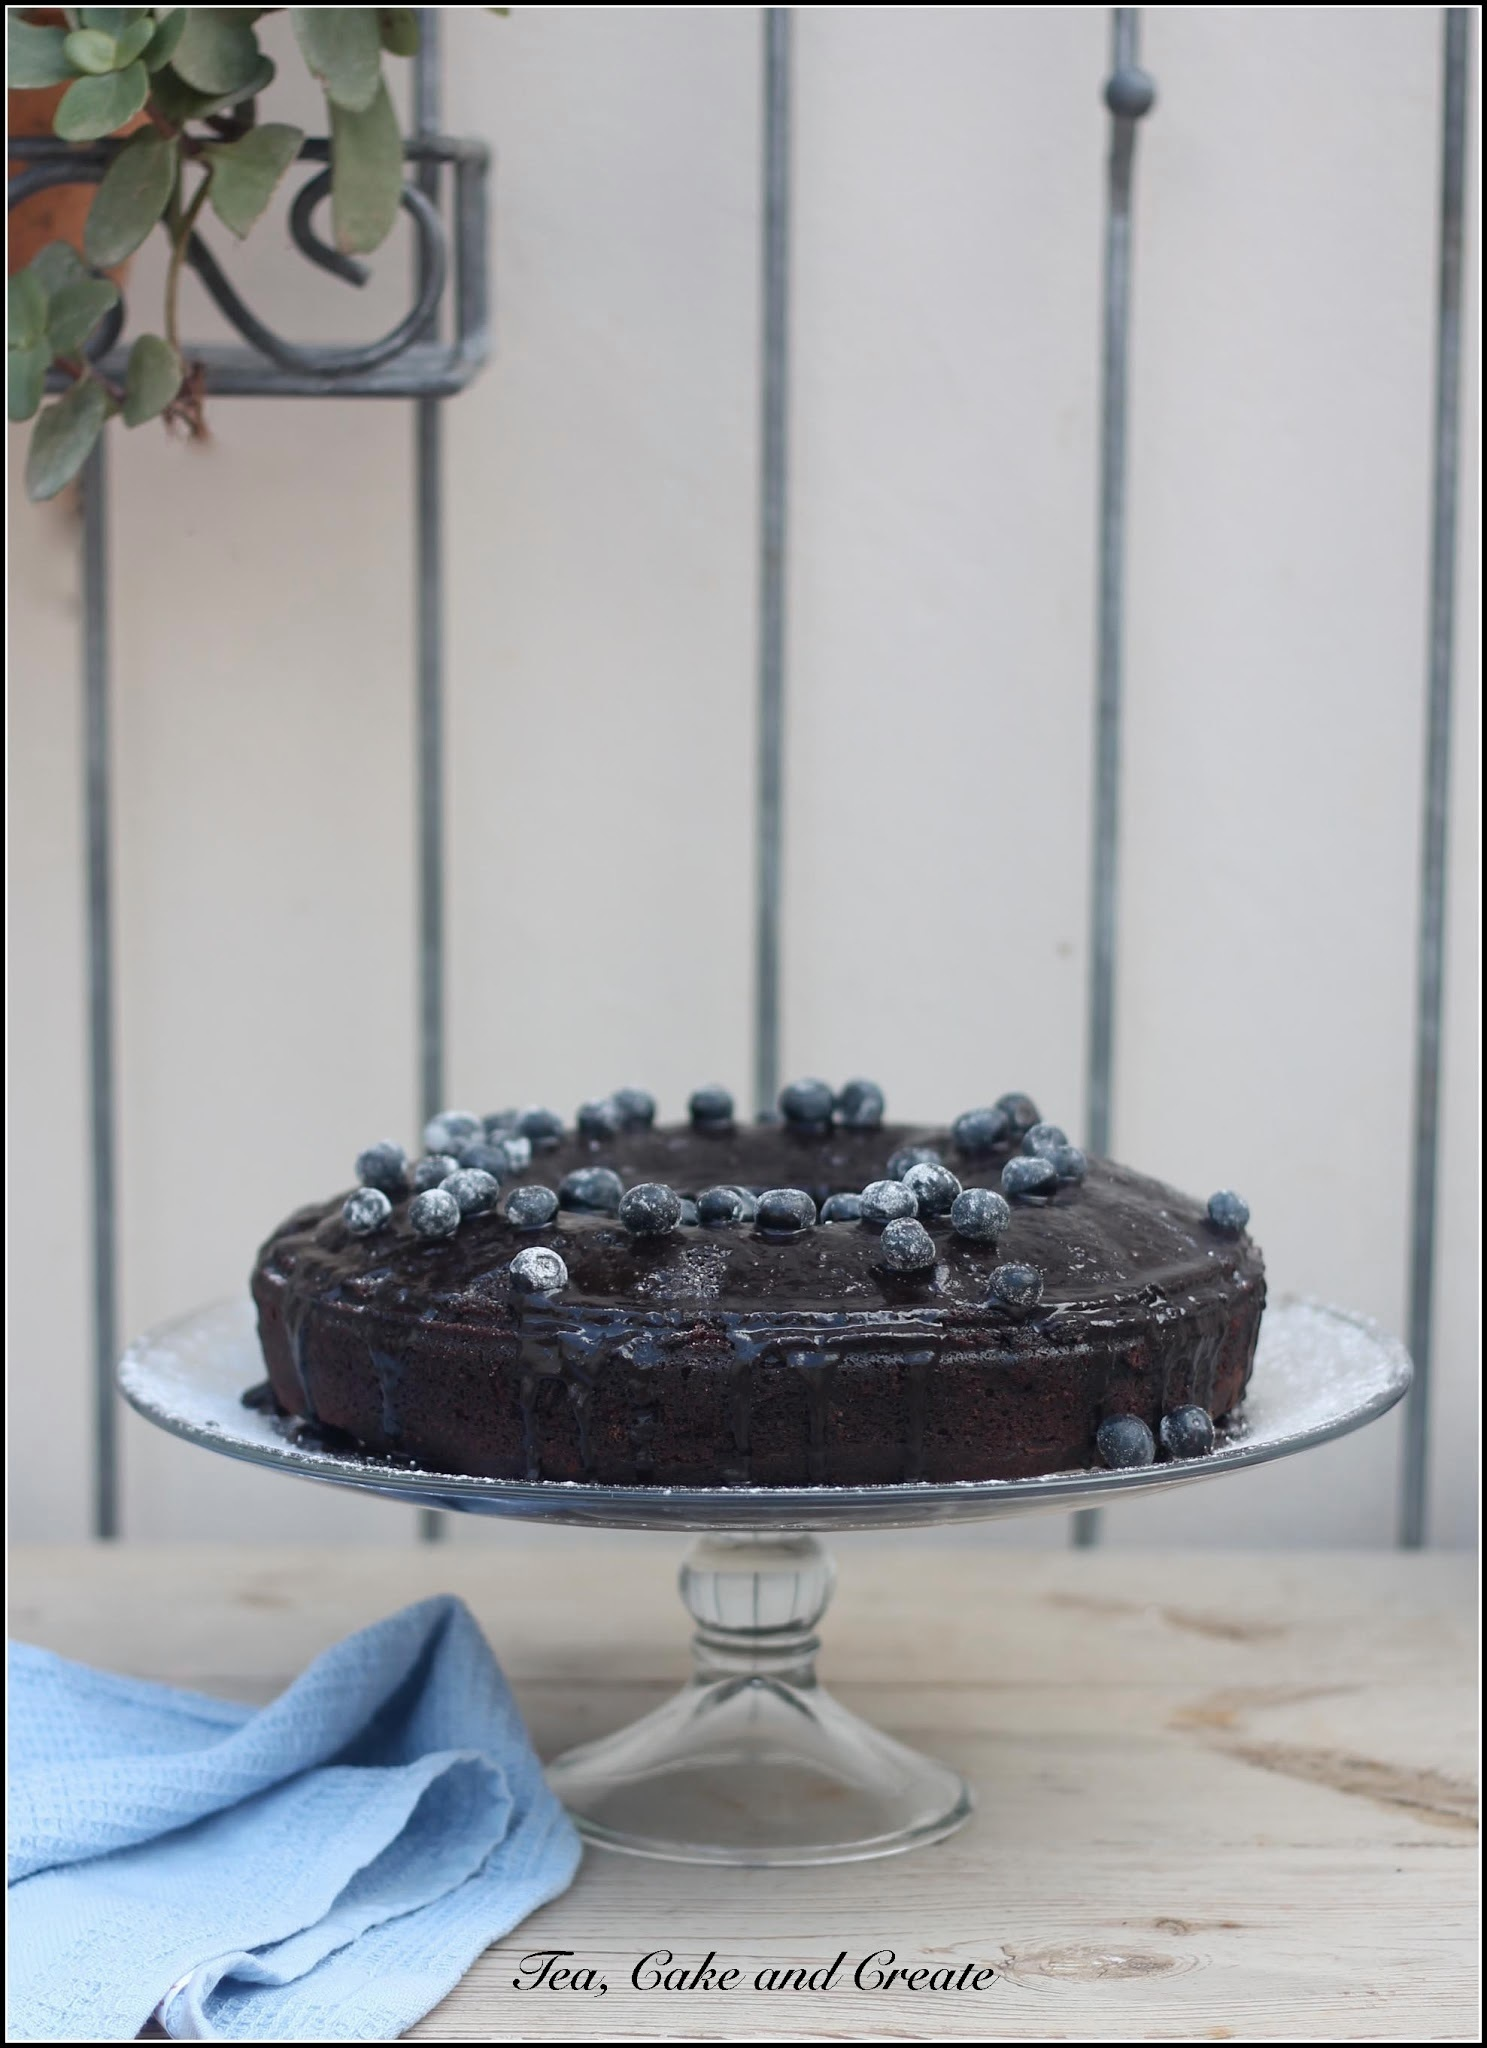 Sour Cream Chocolate and Blueberry cake